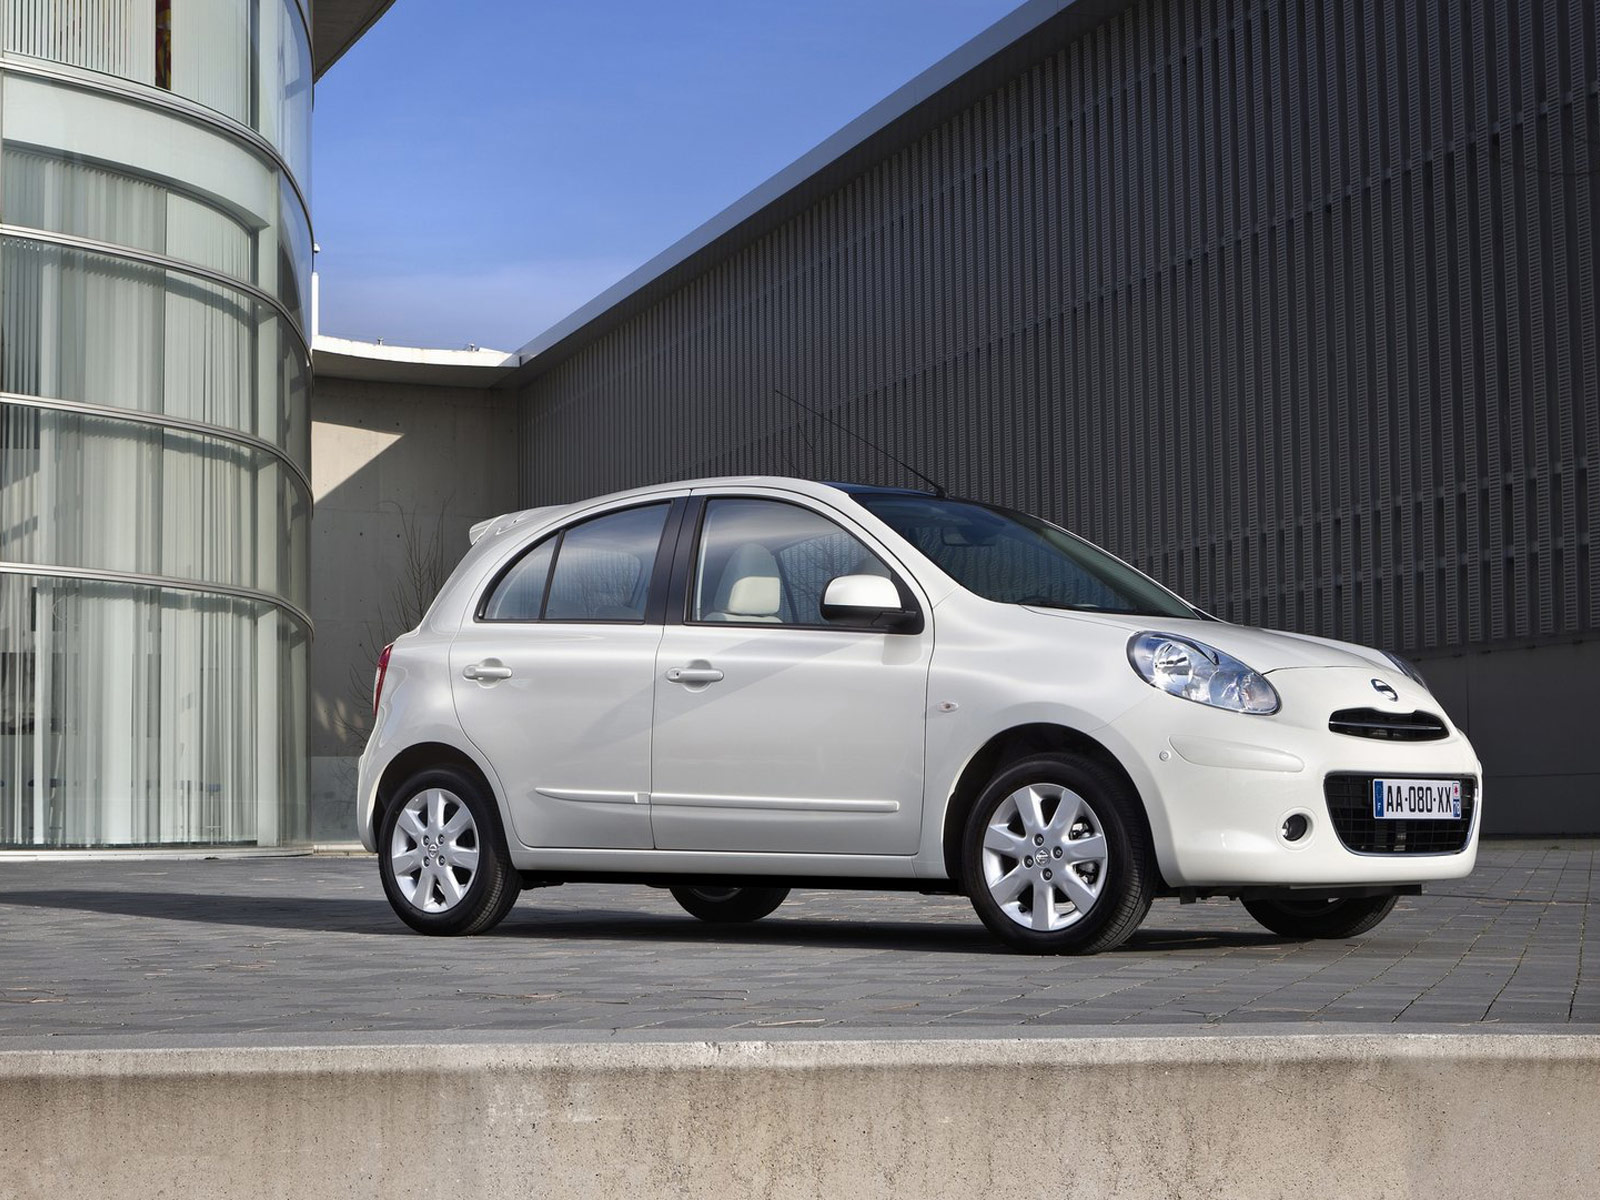 2012 Nissan Micra DIG-S Japanese car photos. accident lawyers